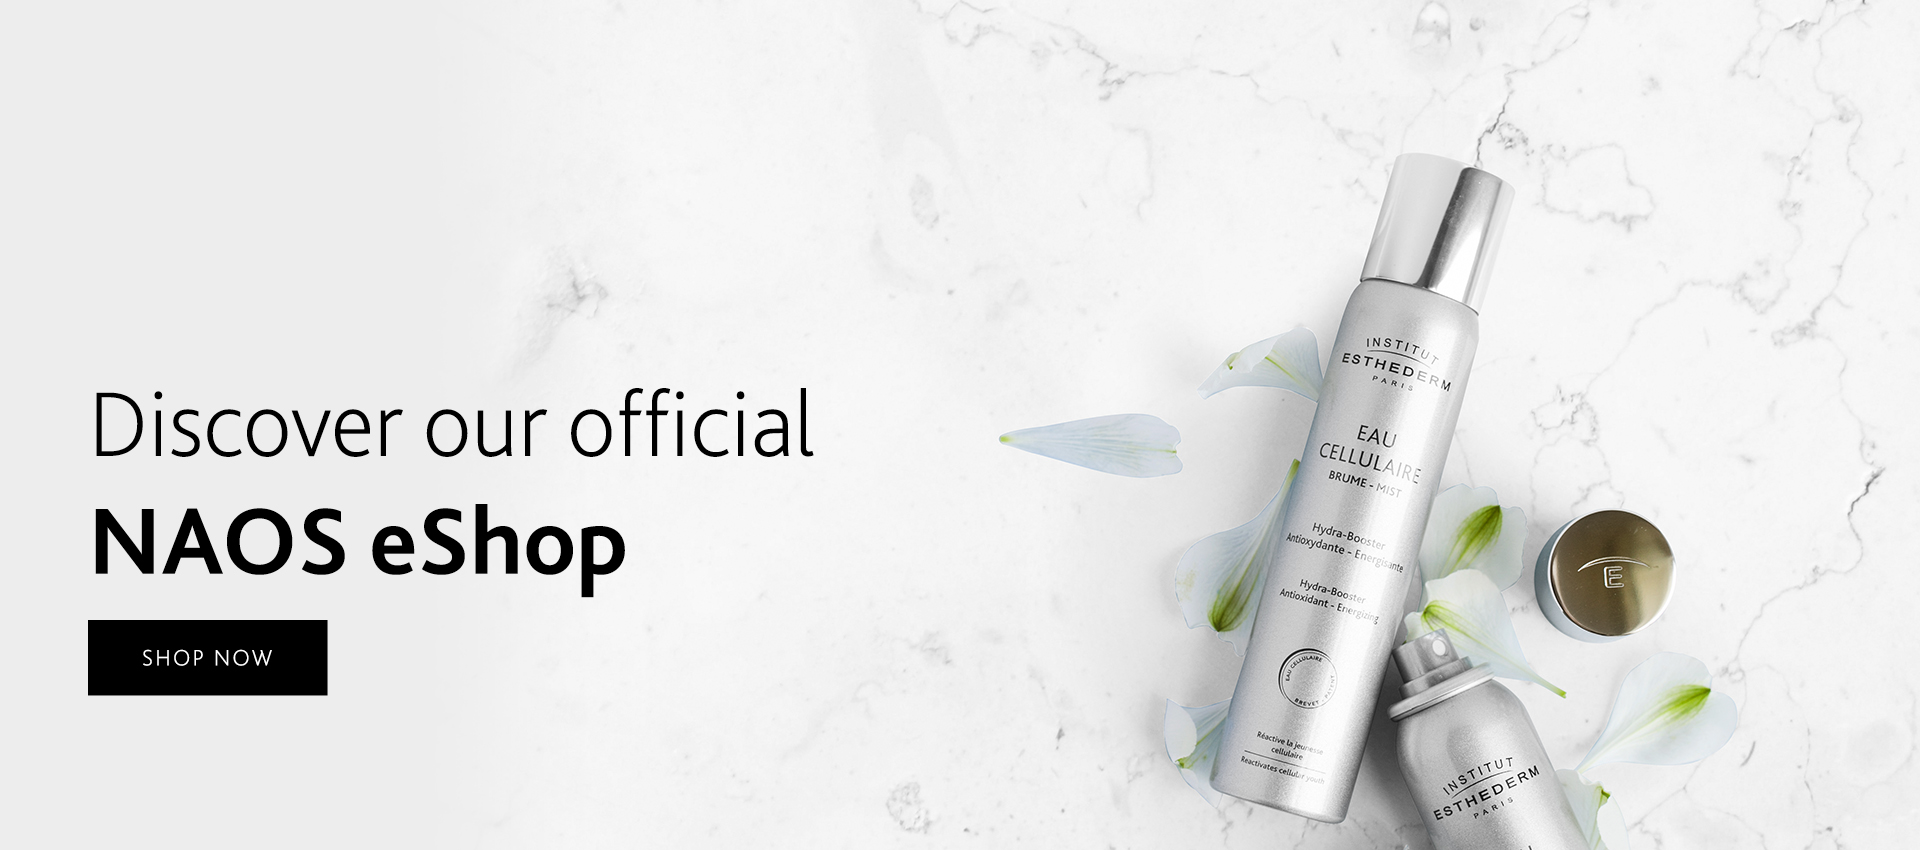 Institut Esthederm available on official NAOS eShop